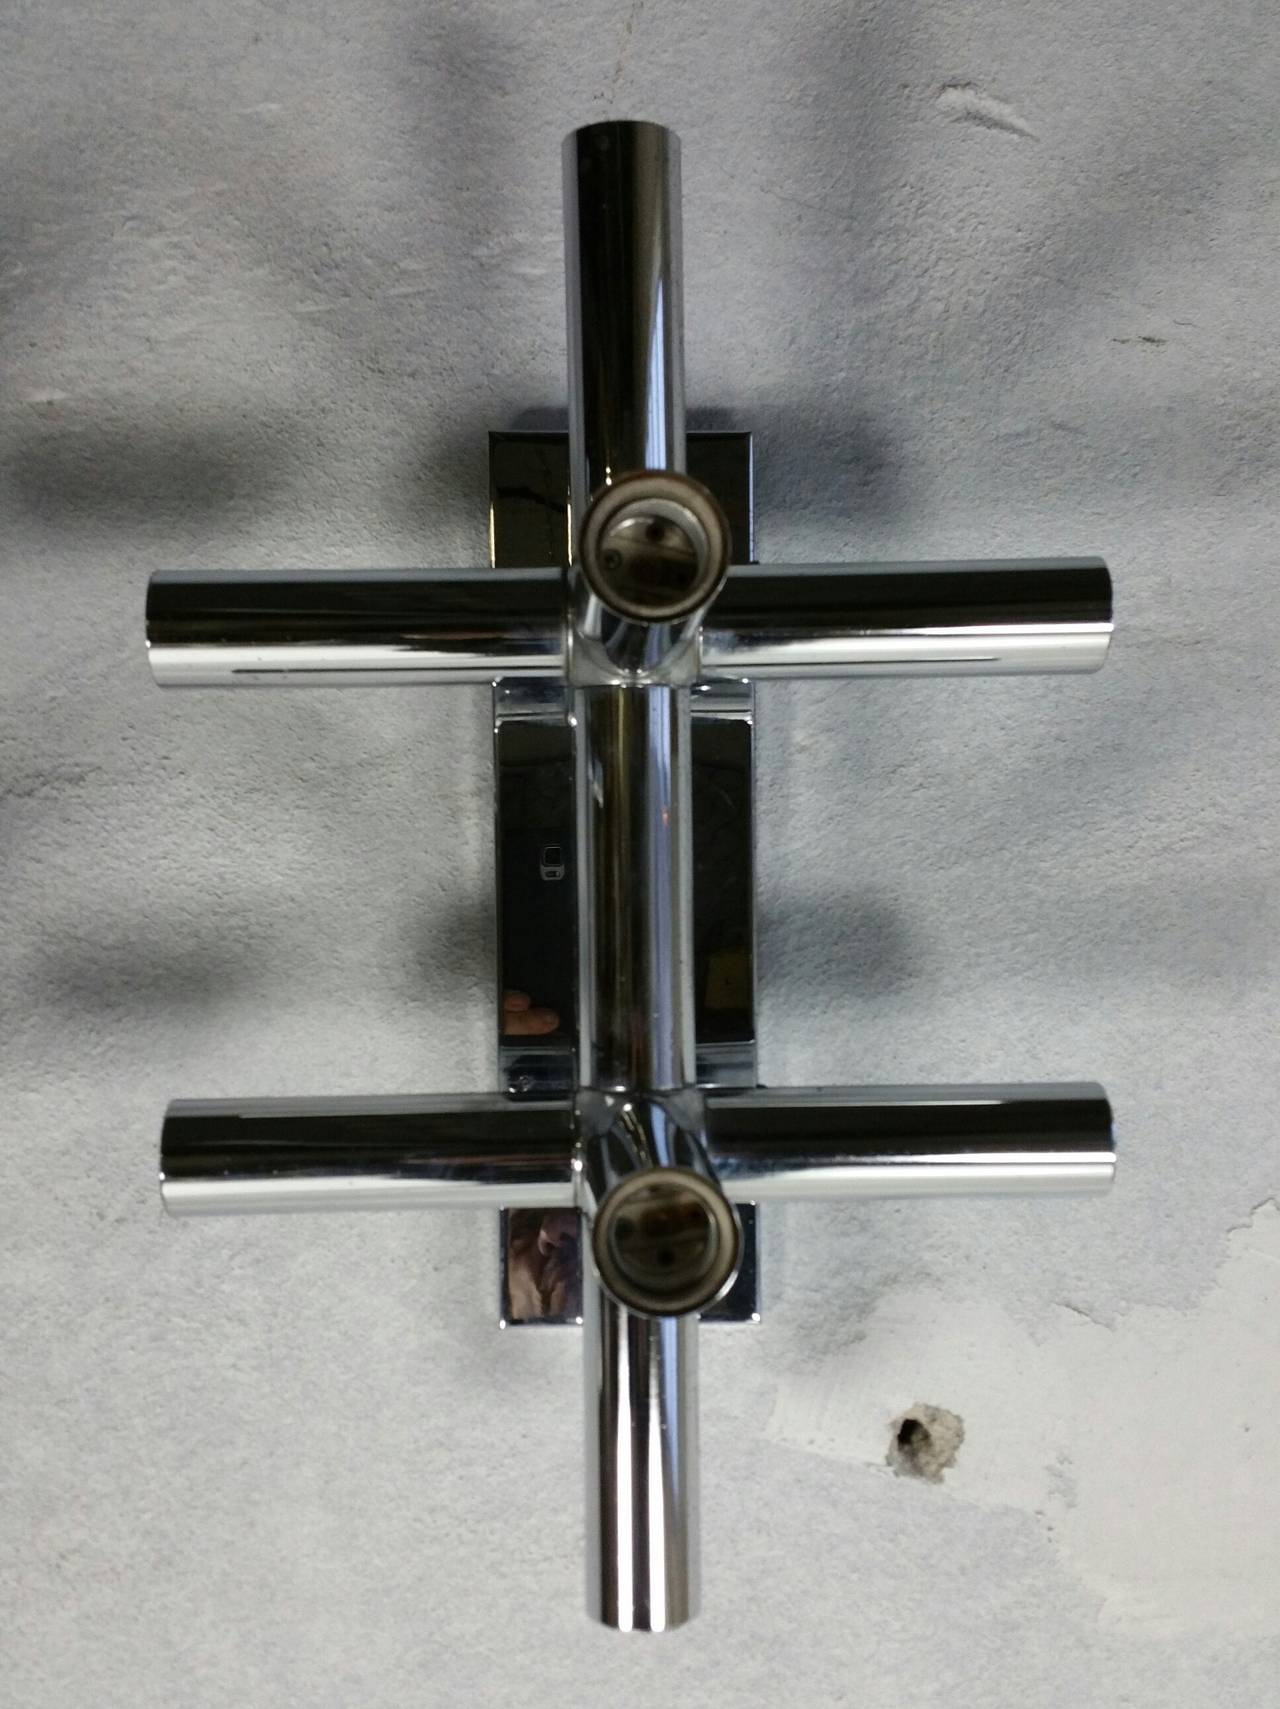 Pair of Lightolier Chrome Tube Sconces, 1970s Space Age, Atomic For Sale 2